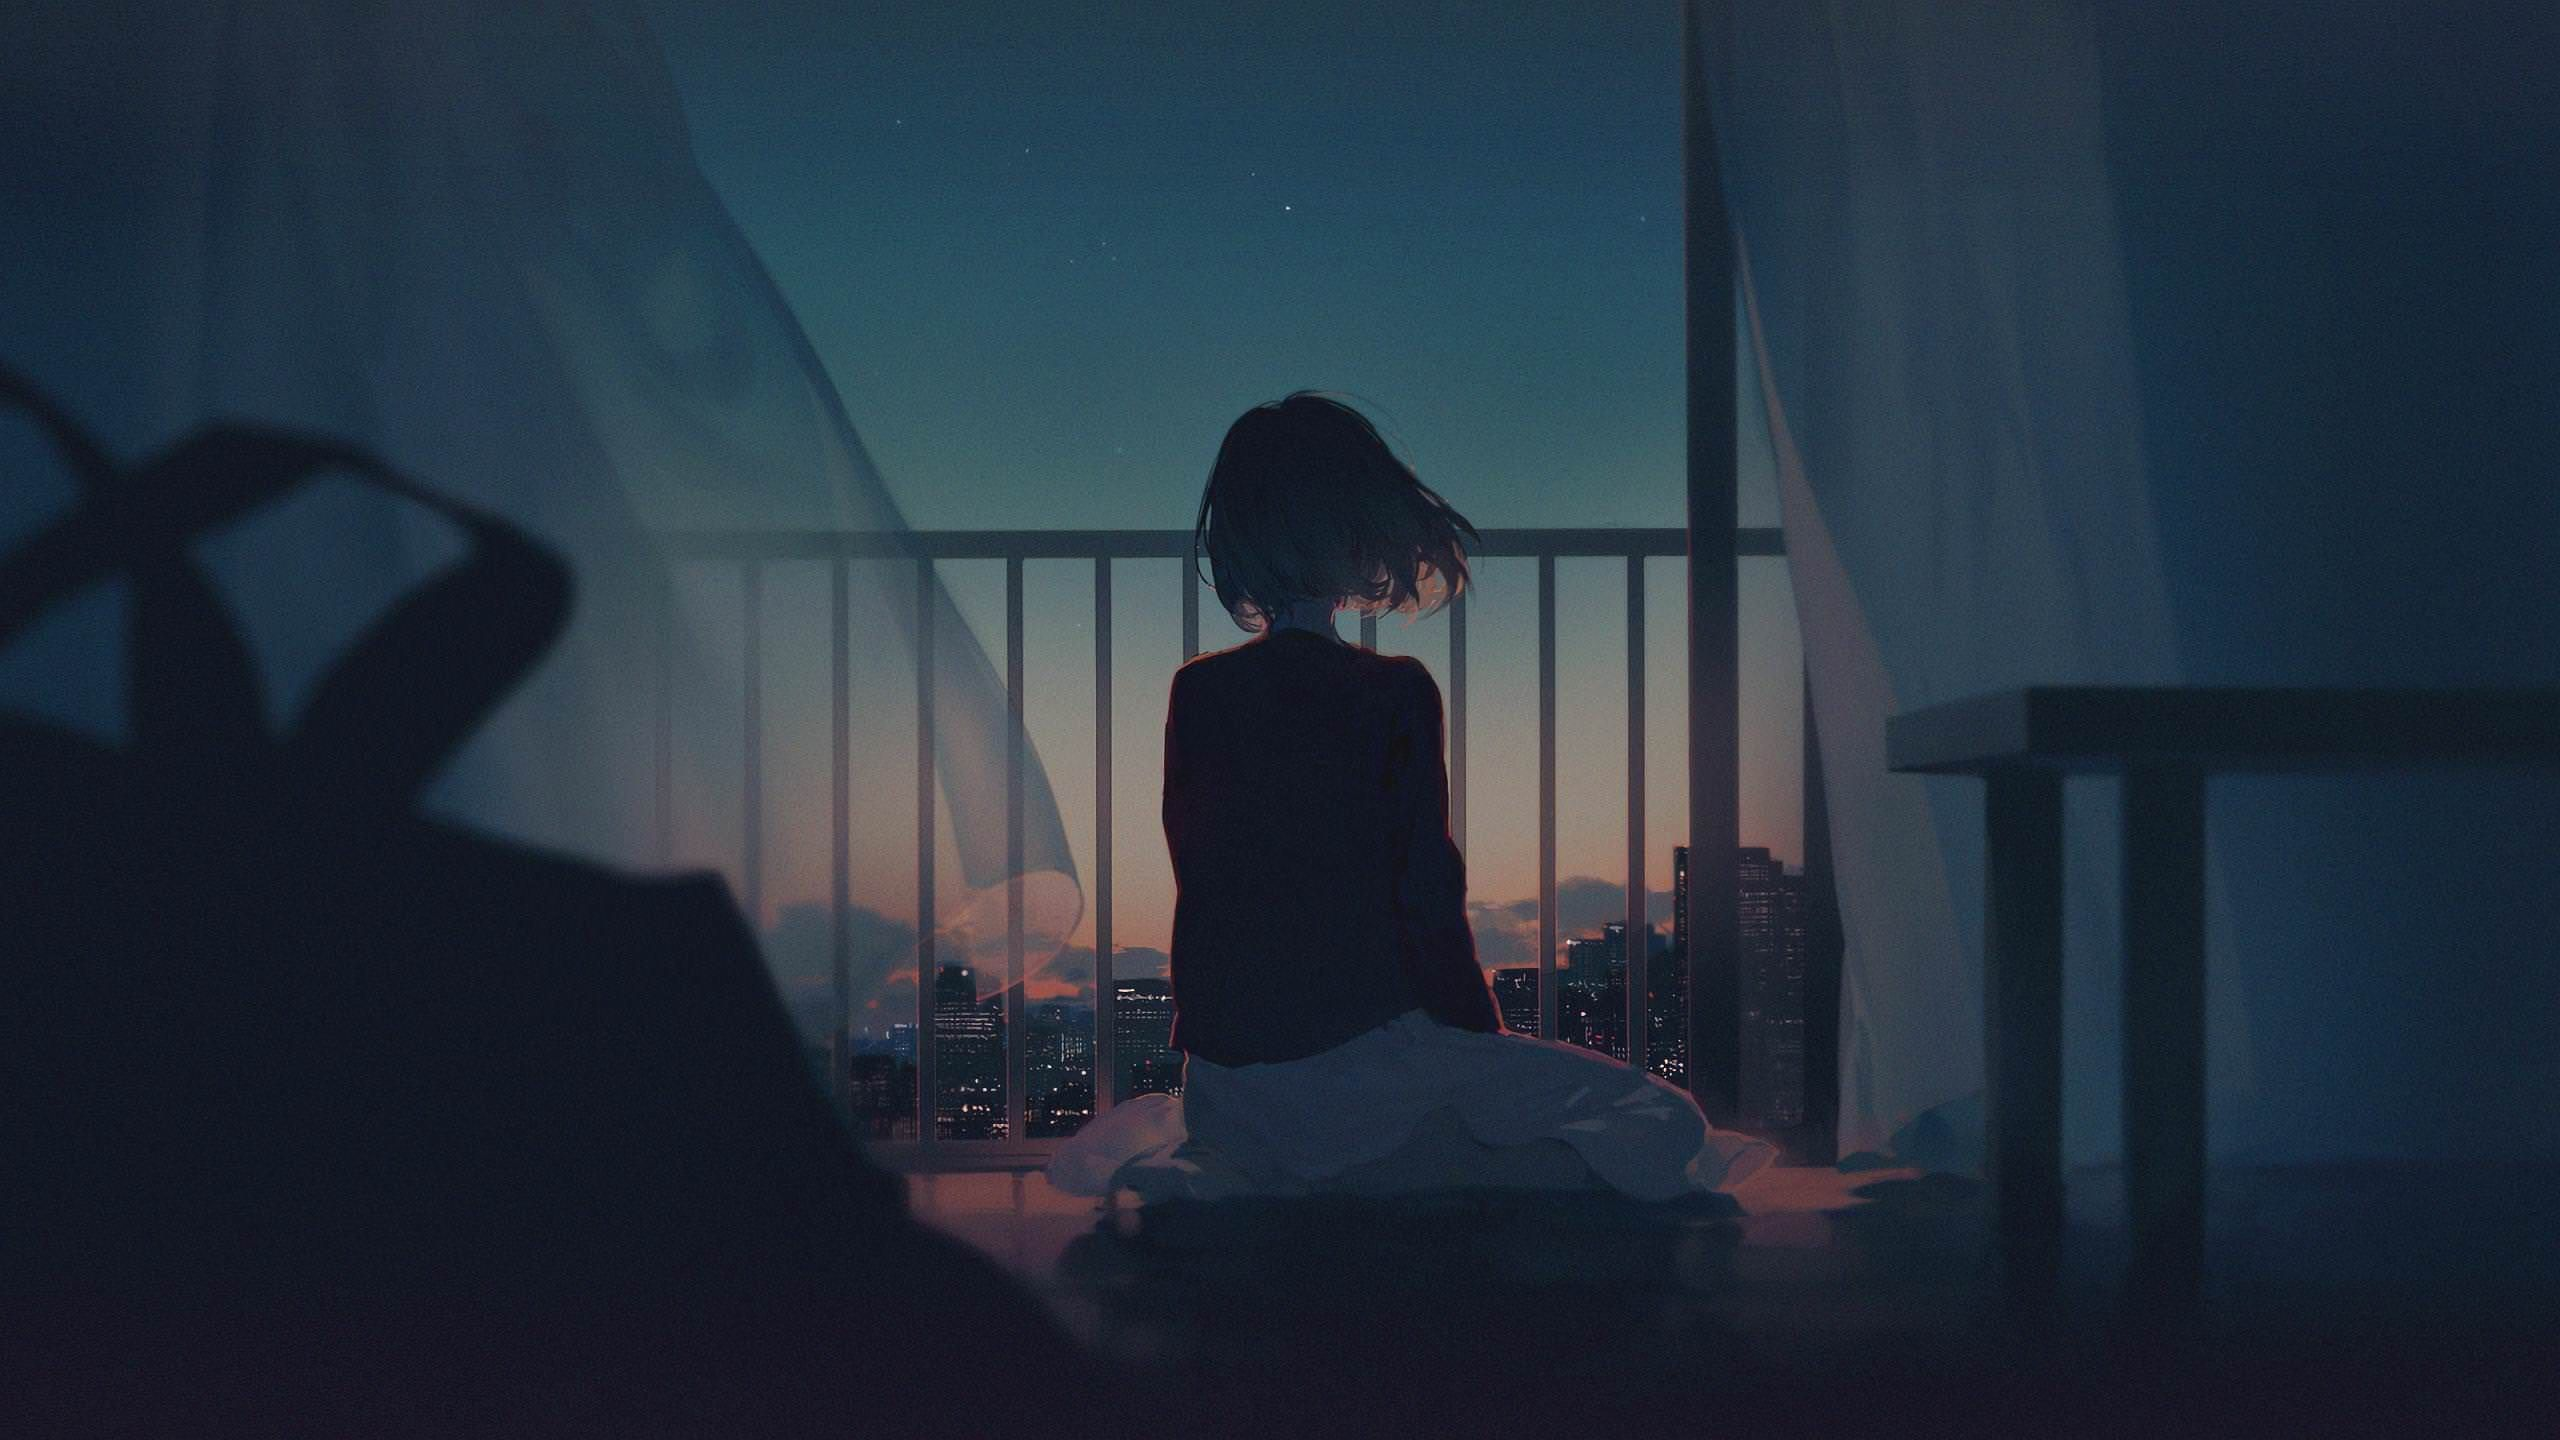 Alone Anime Girl Wallpapers - Top Free Alone Anime Girl